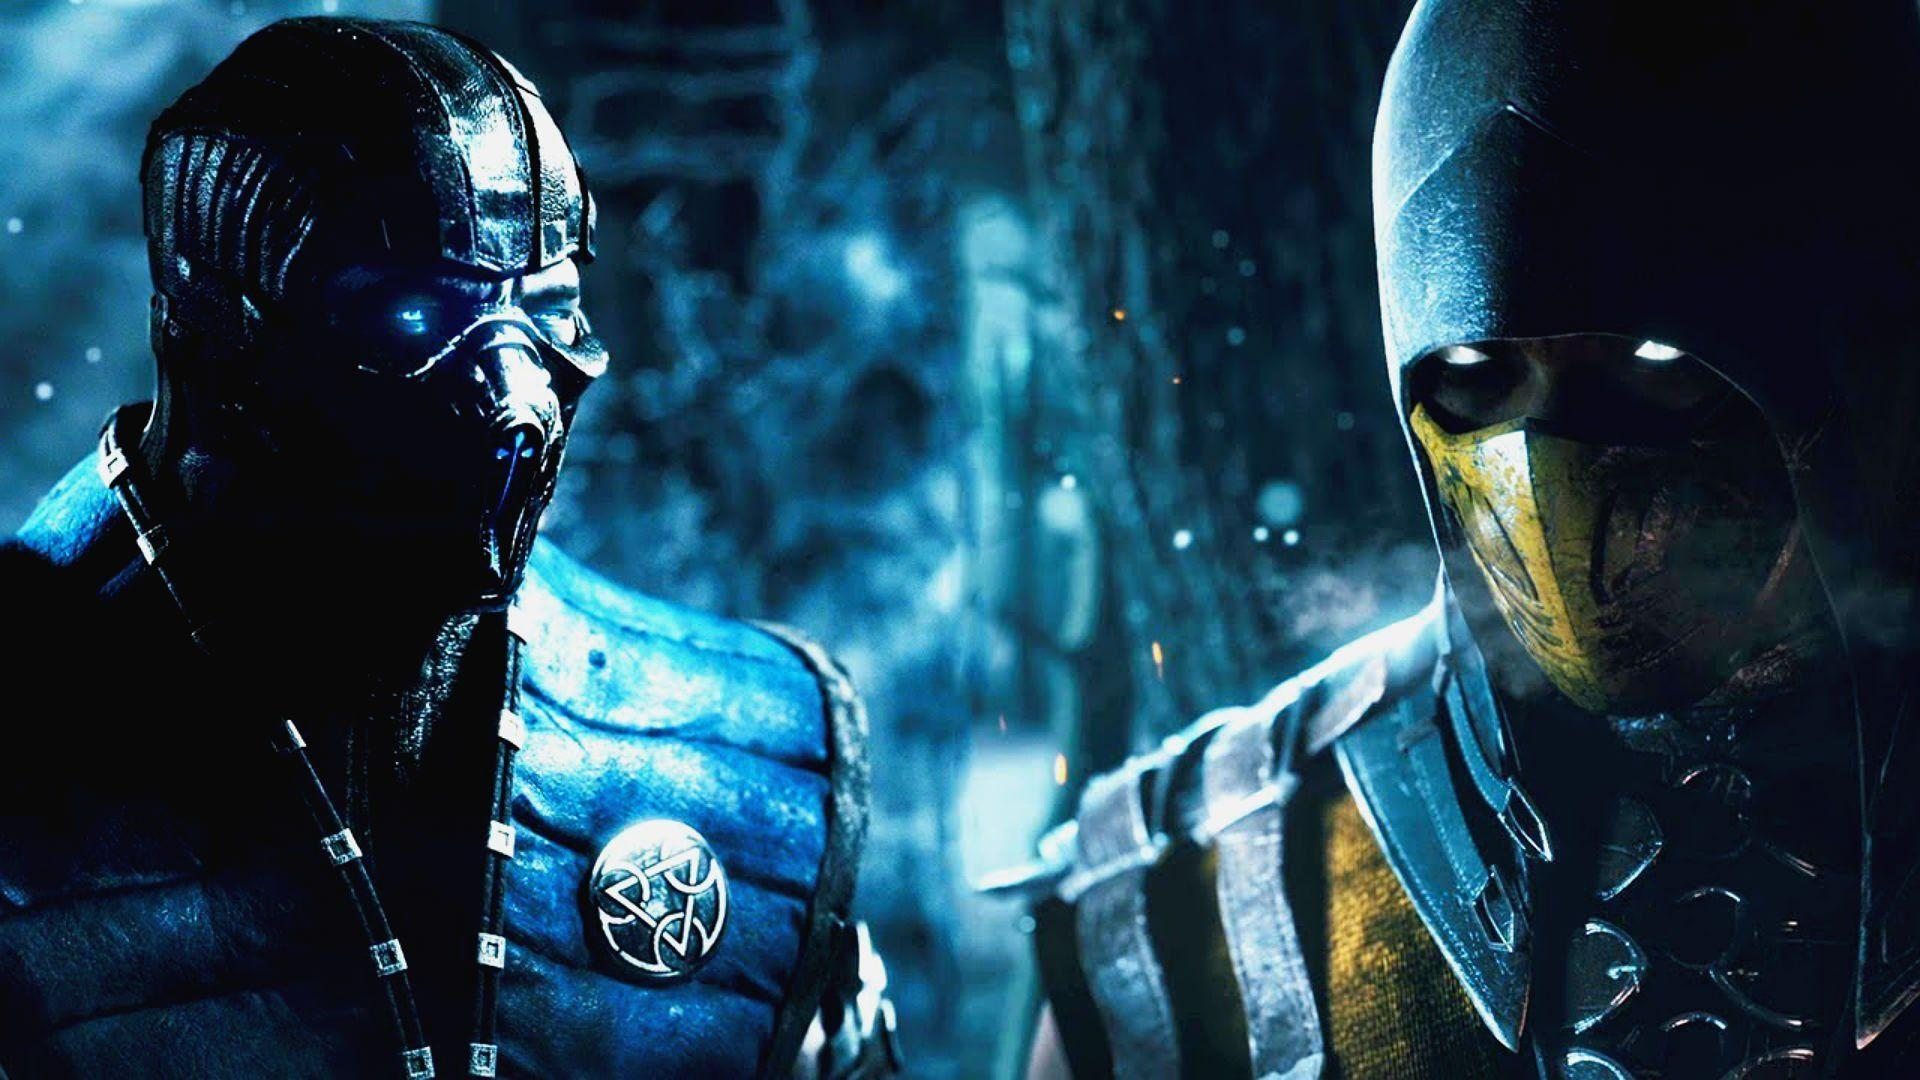 Mortal Kombat HD Wallpapers 1080p - Wallpaper Cave